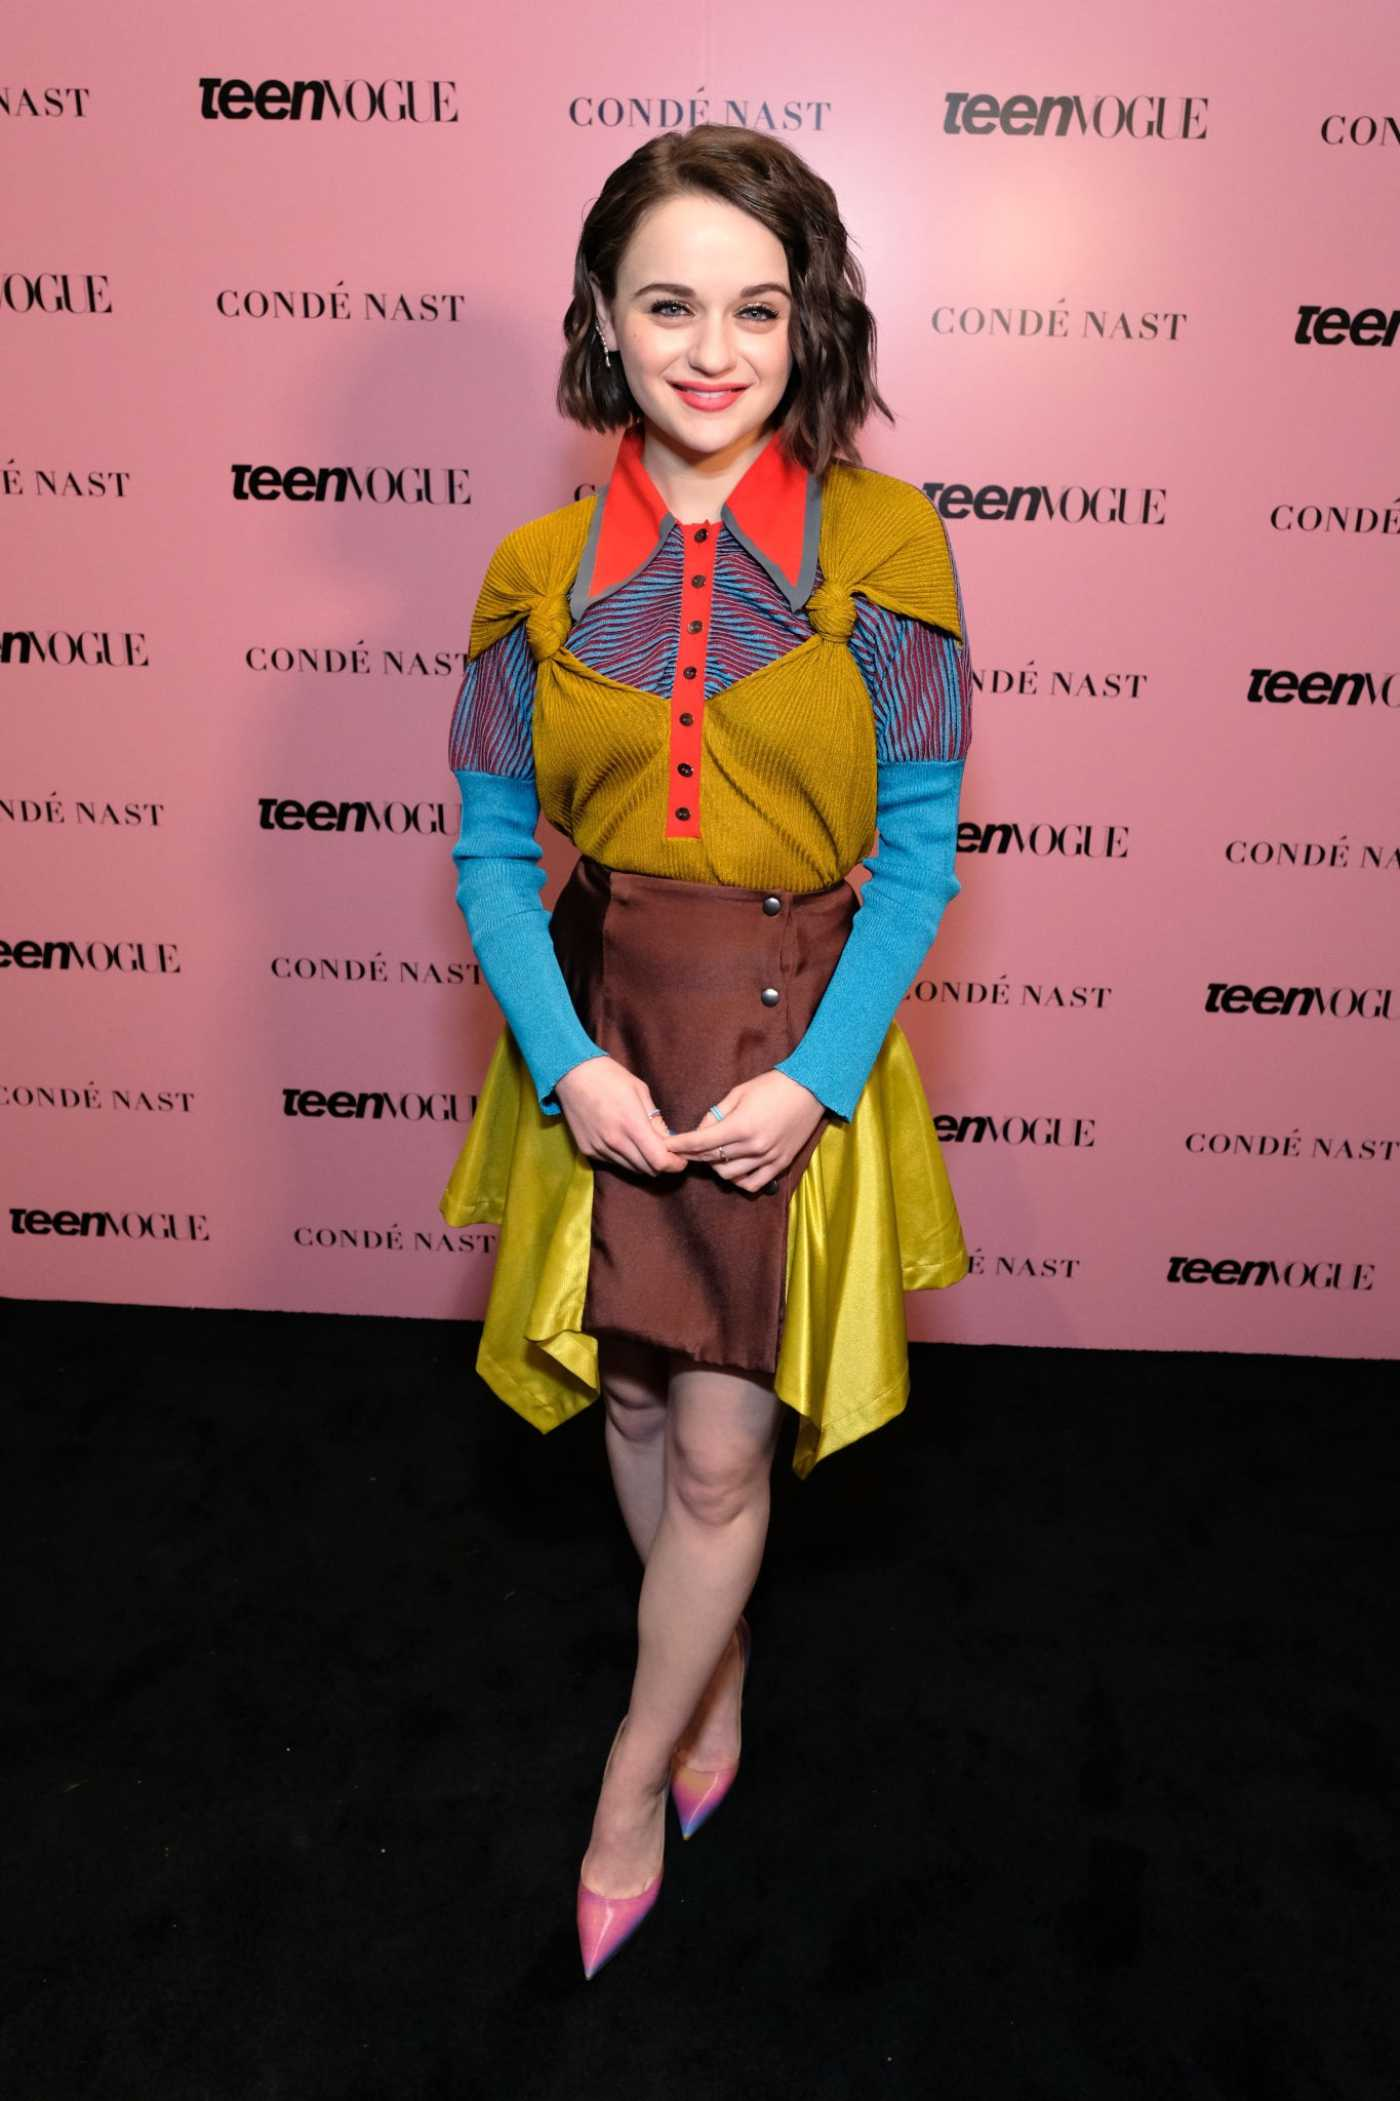 Joey King Attends 2019 Teen Vogue Summit in Hollywood 11/02/2019